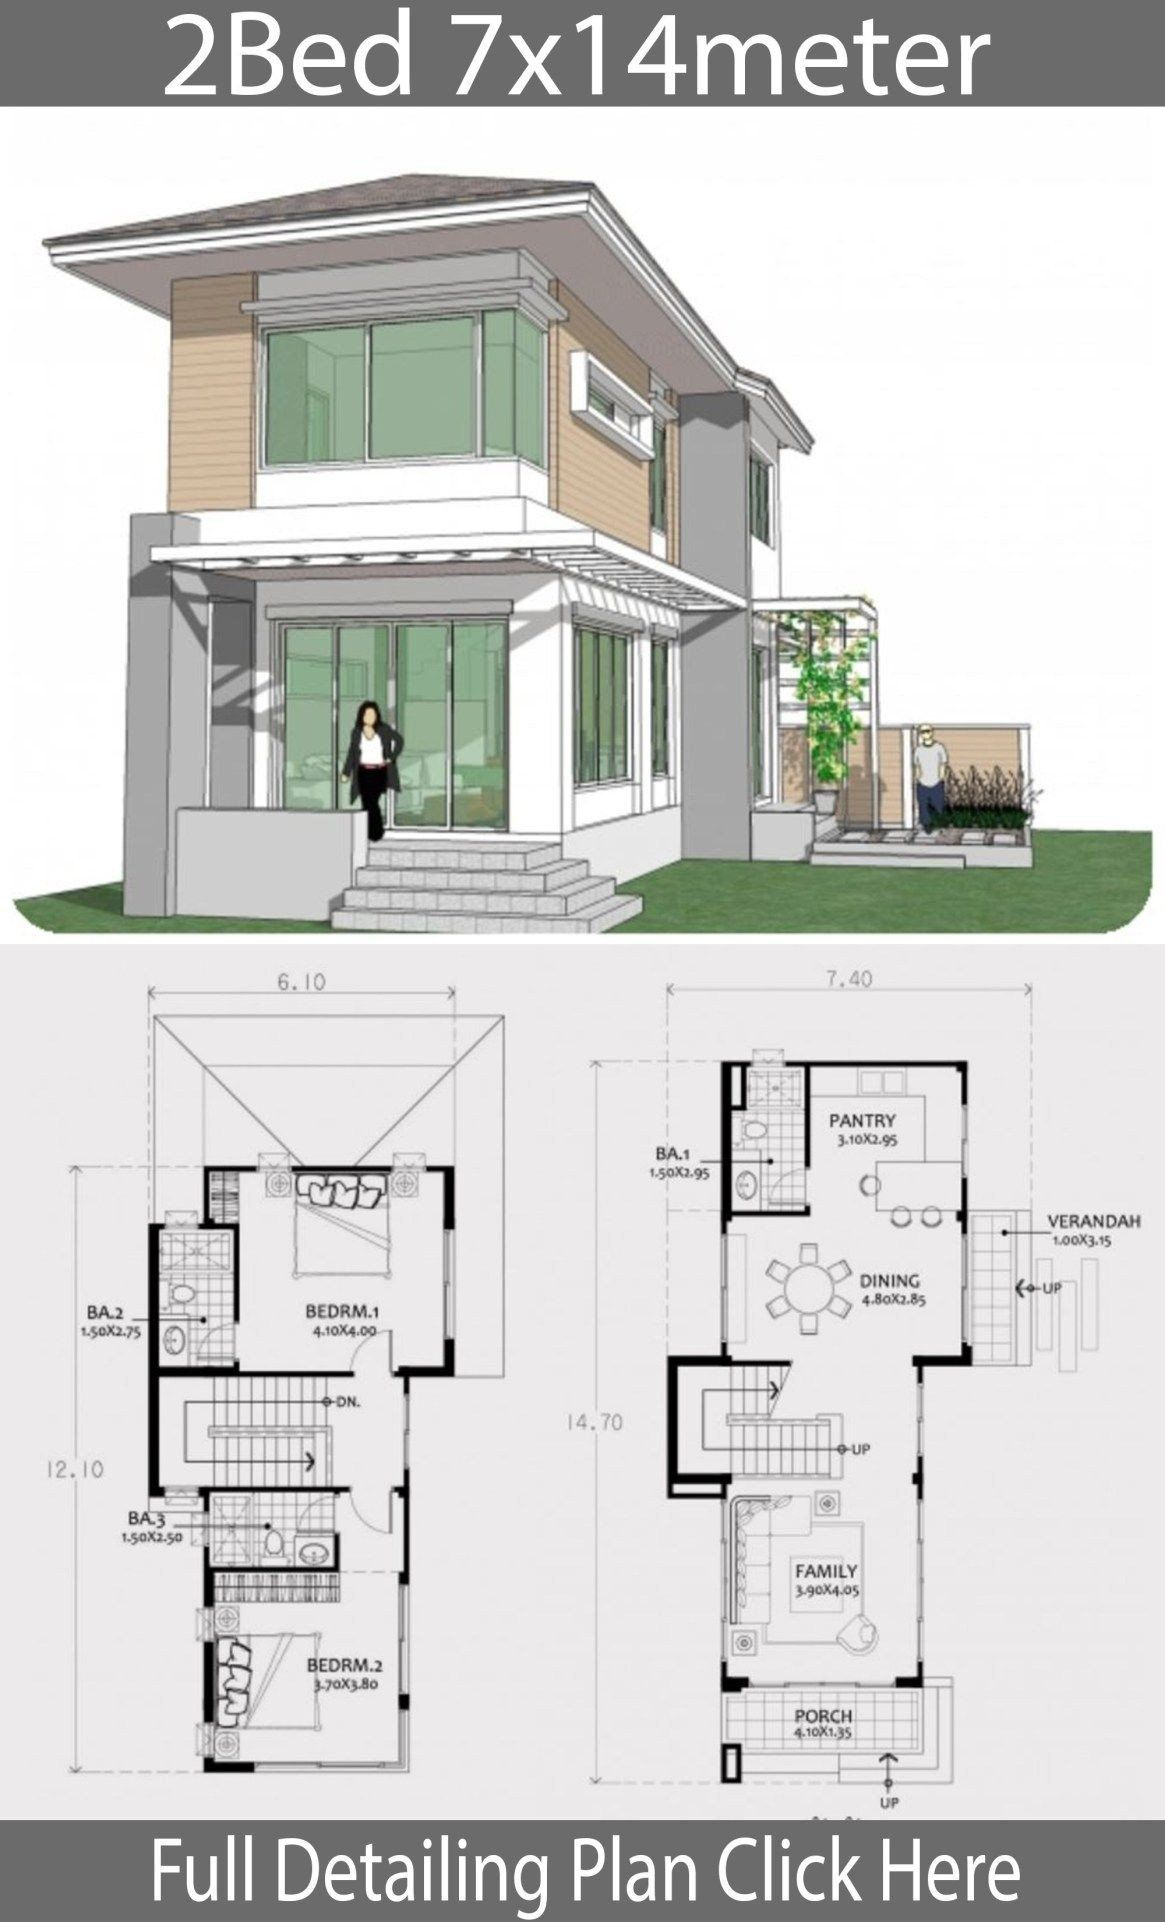 Small Modern House Plans Two Floors Small Two Story House Plan 7x14m With Images Cottage Style House Plans Modern House Plans Small Modern House Plans